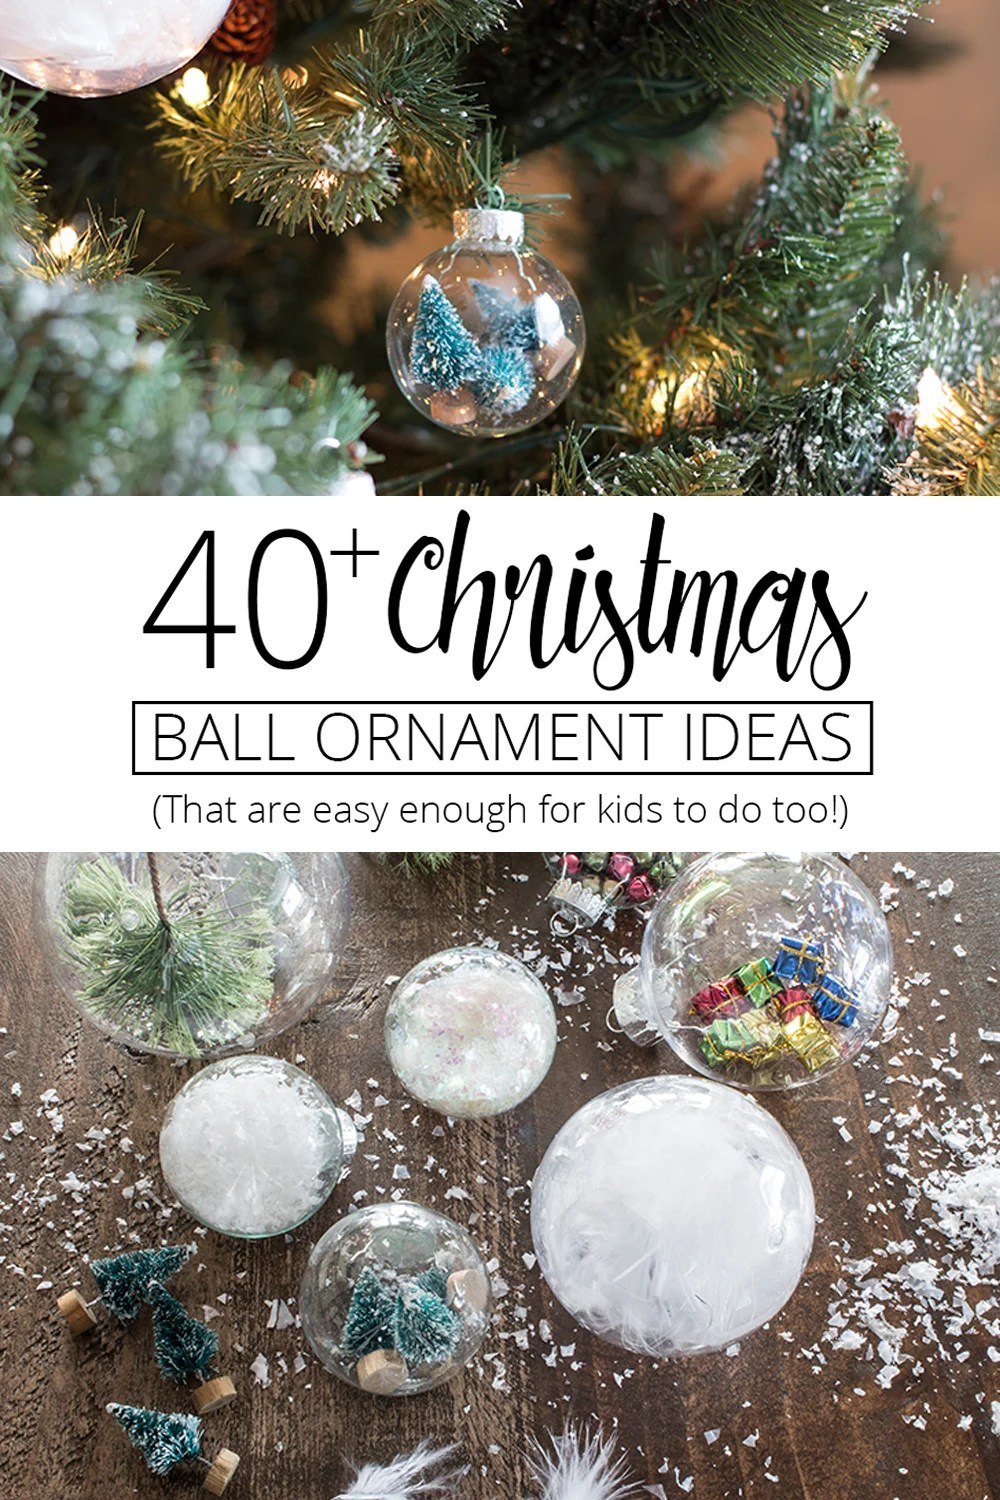 create memories making your own ornaments with over 40 easy to make christmas ball ornament ideas